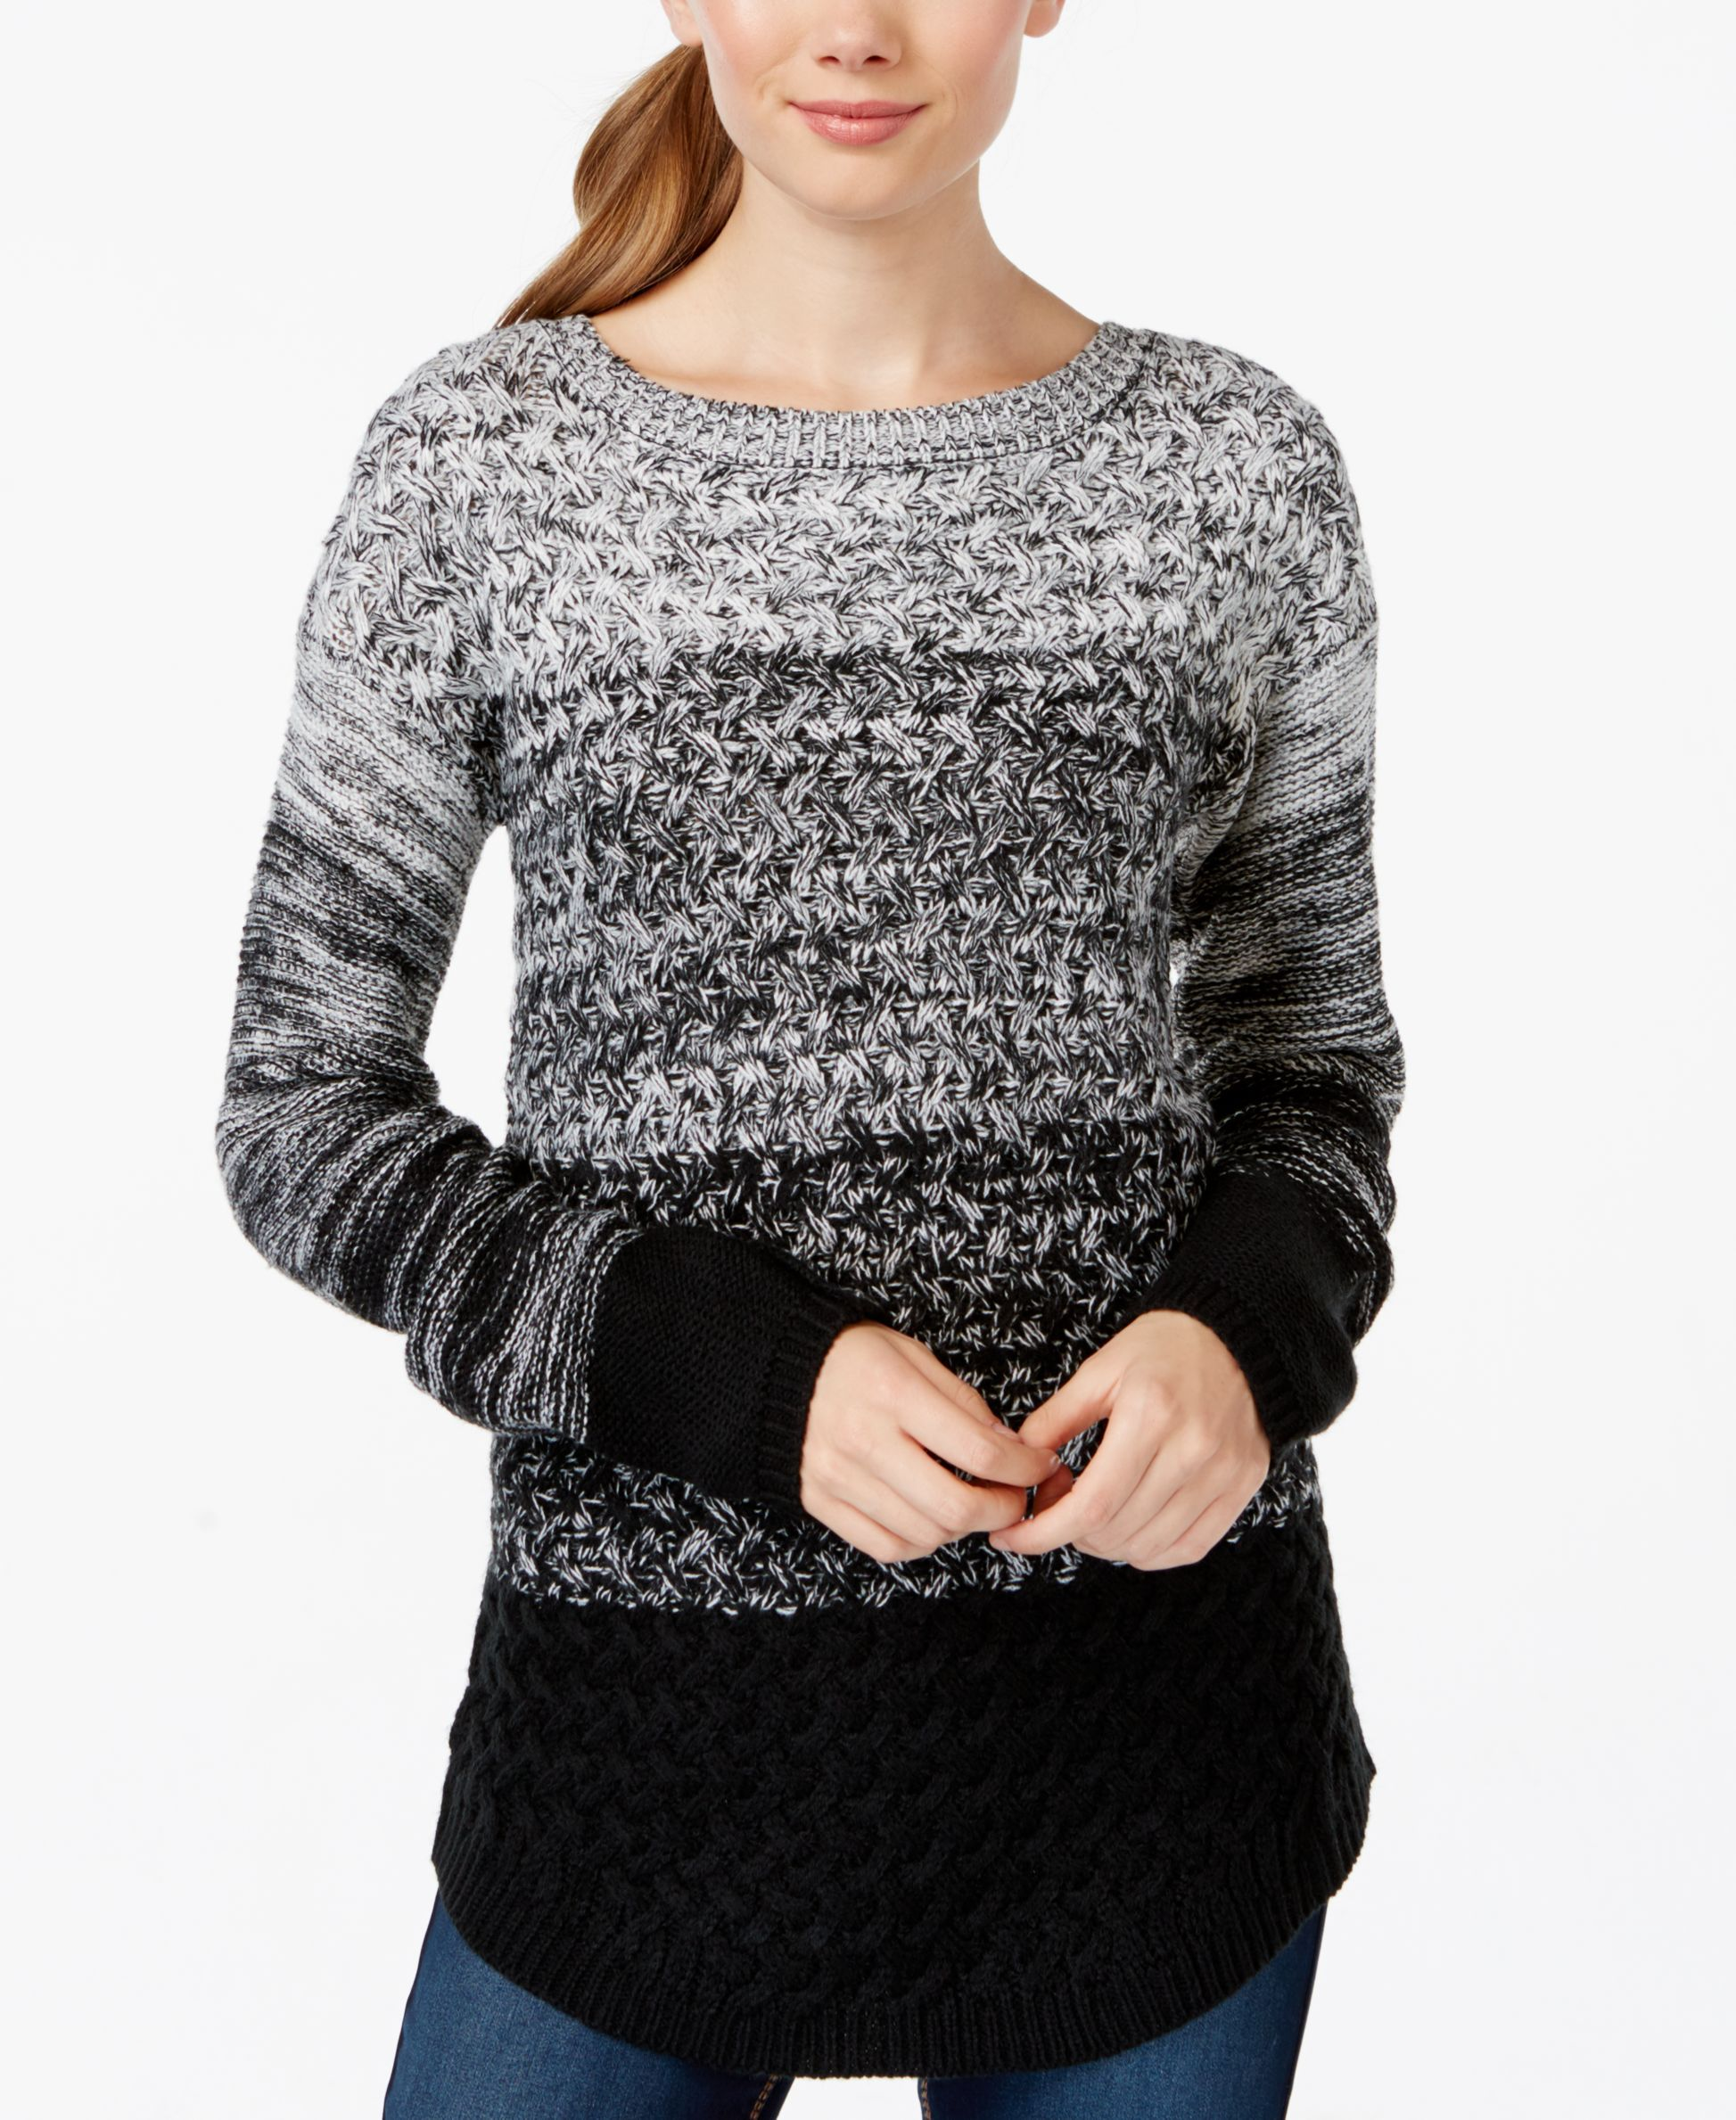 It's Our Time Juniors' Ombre Mixed-Knit Tunic Sweater acrylic black/spiritual vanilla, dry desert/spiritual vanilla szS 32.99 Sale thru 10/25 20%off thru 10/25 (26.39)